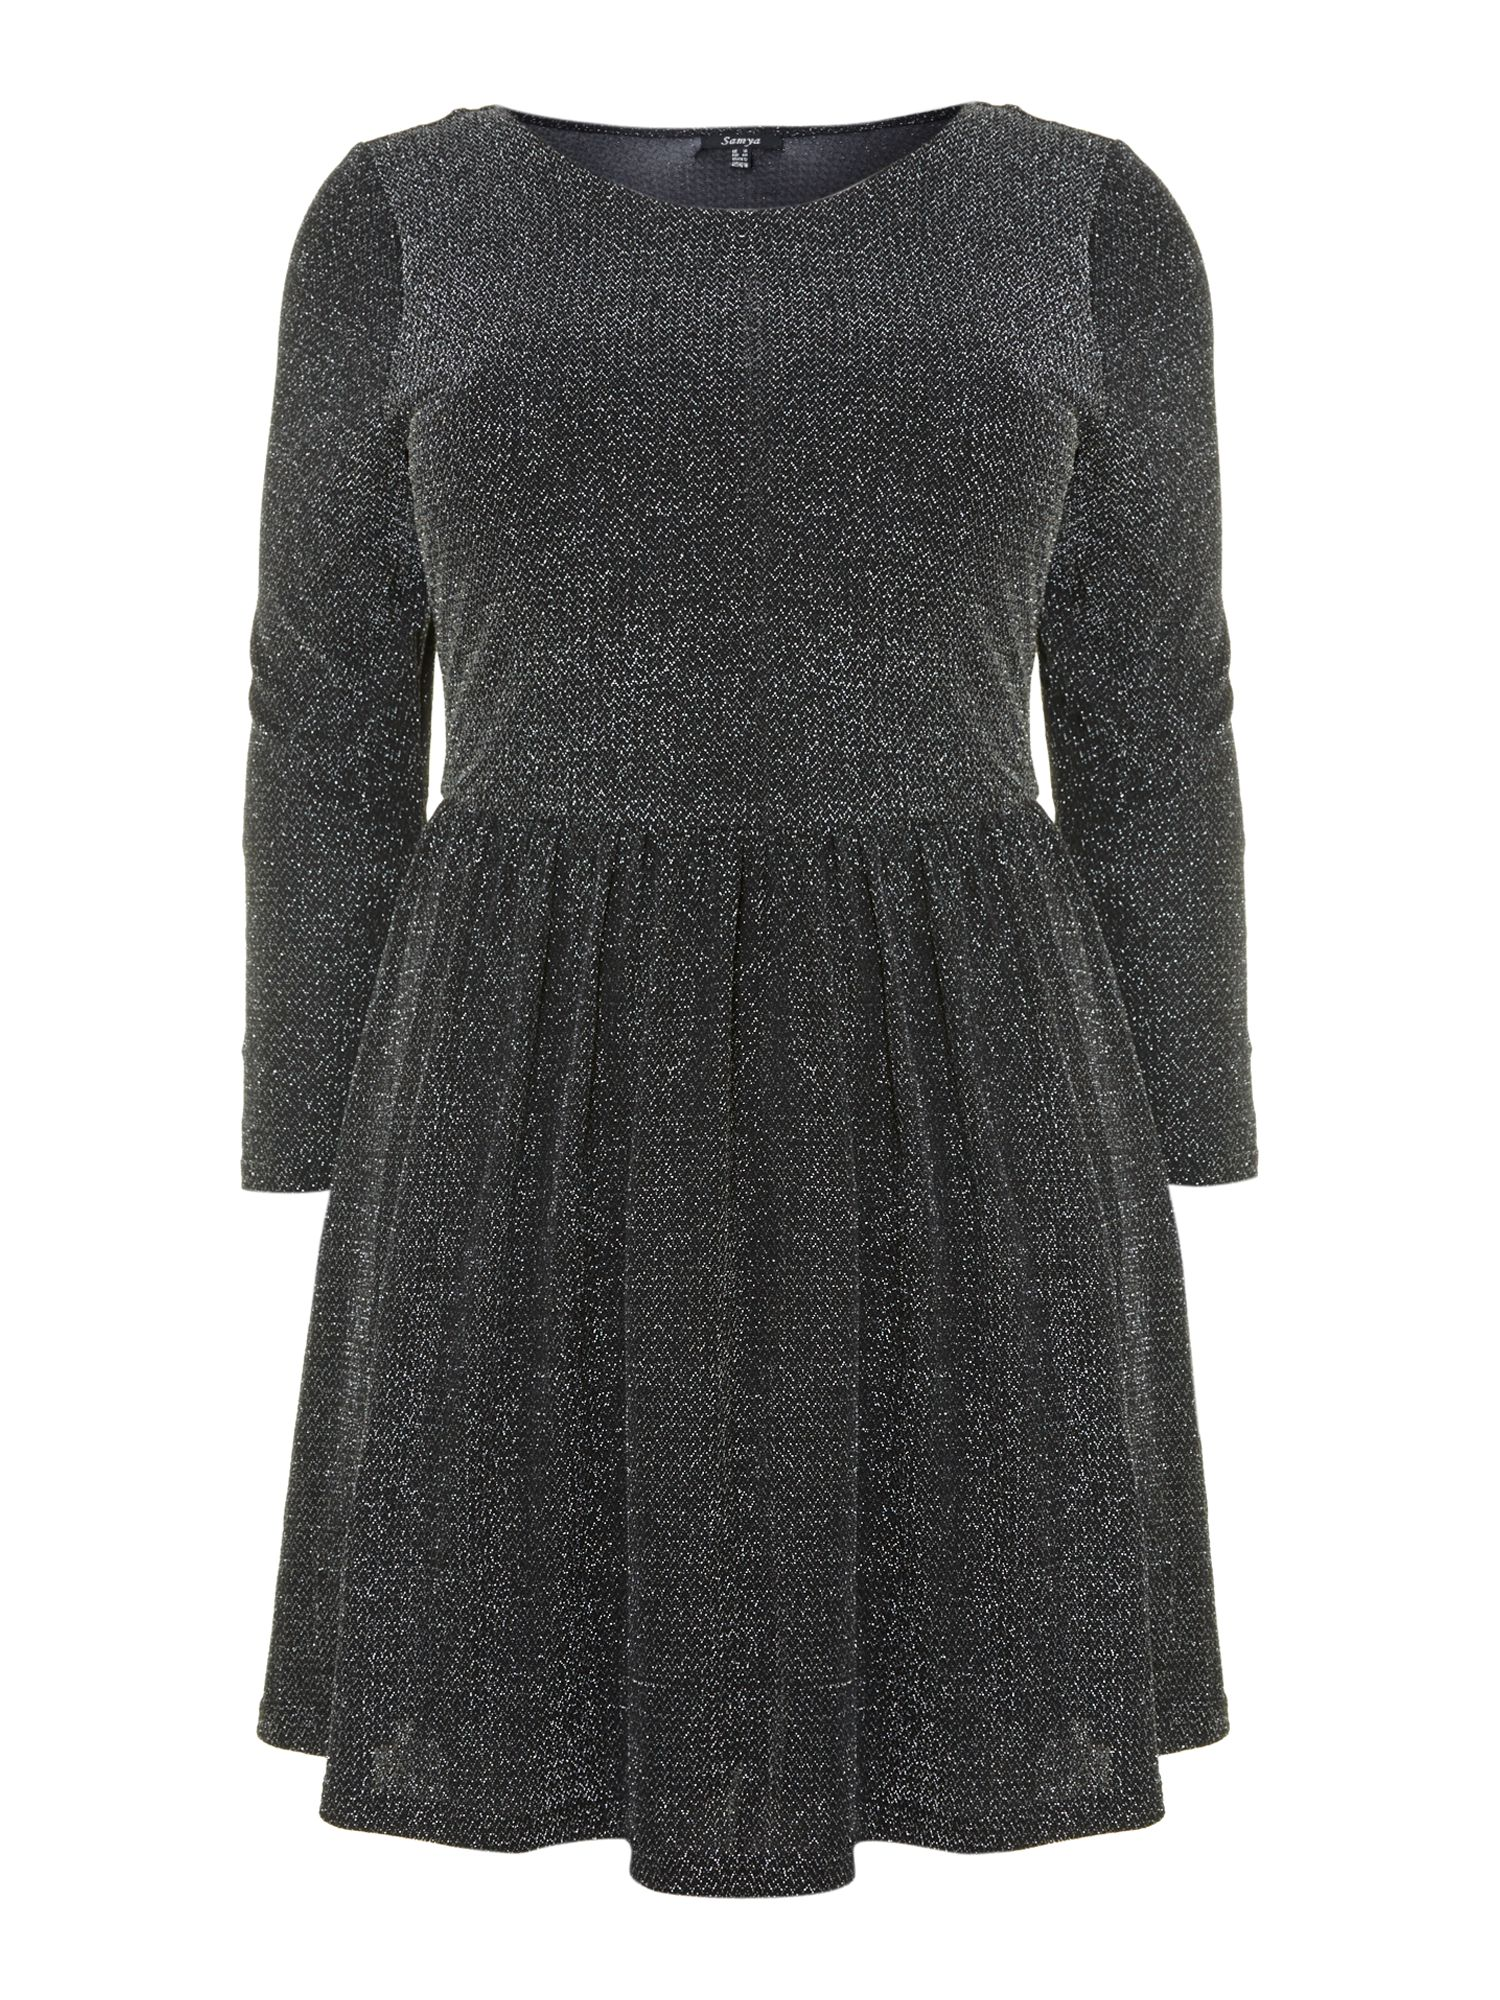 Shimmery long sleeve smock dress